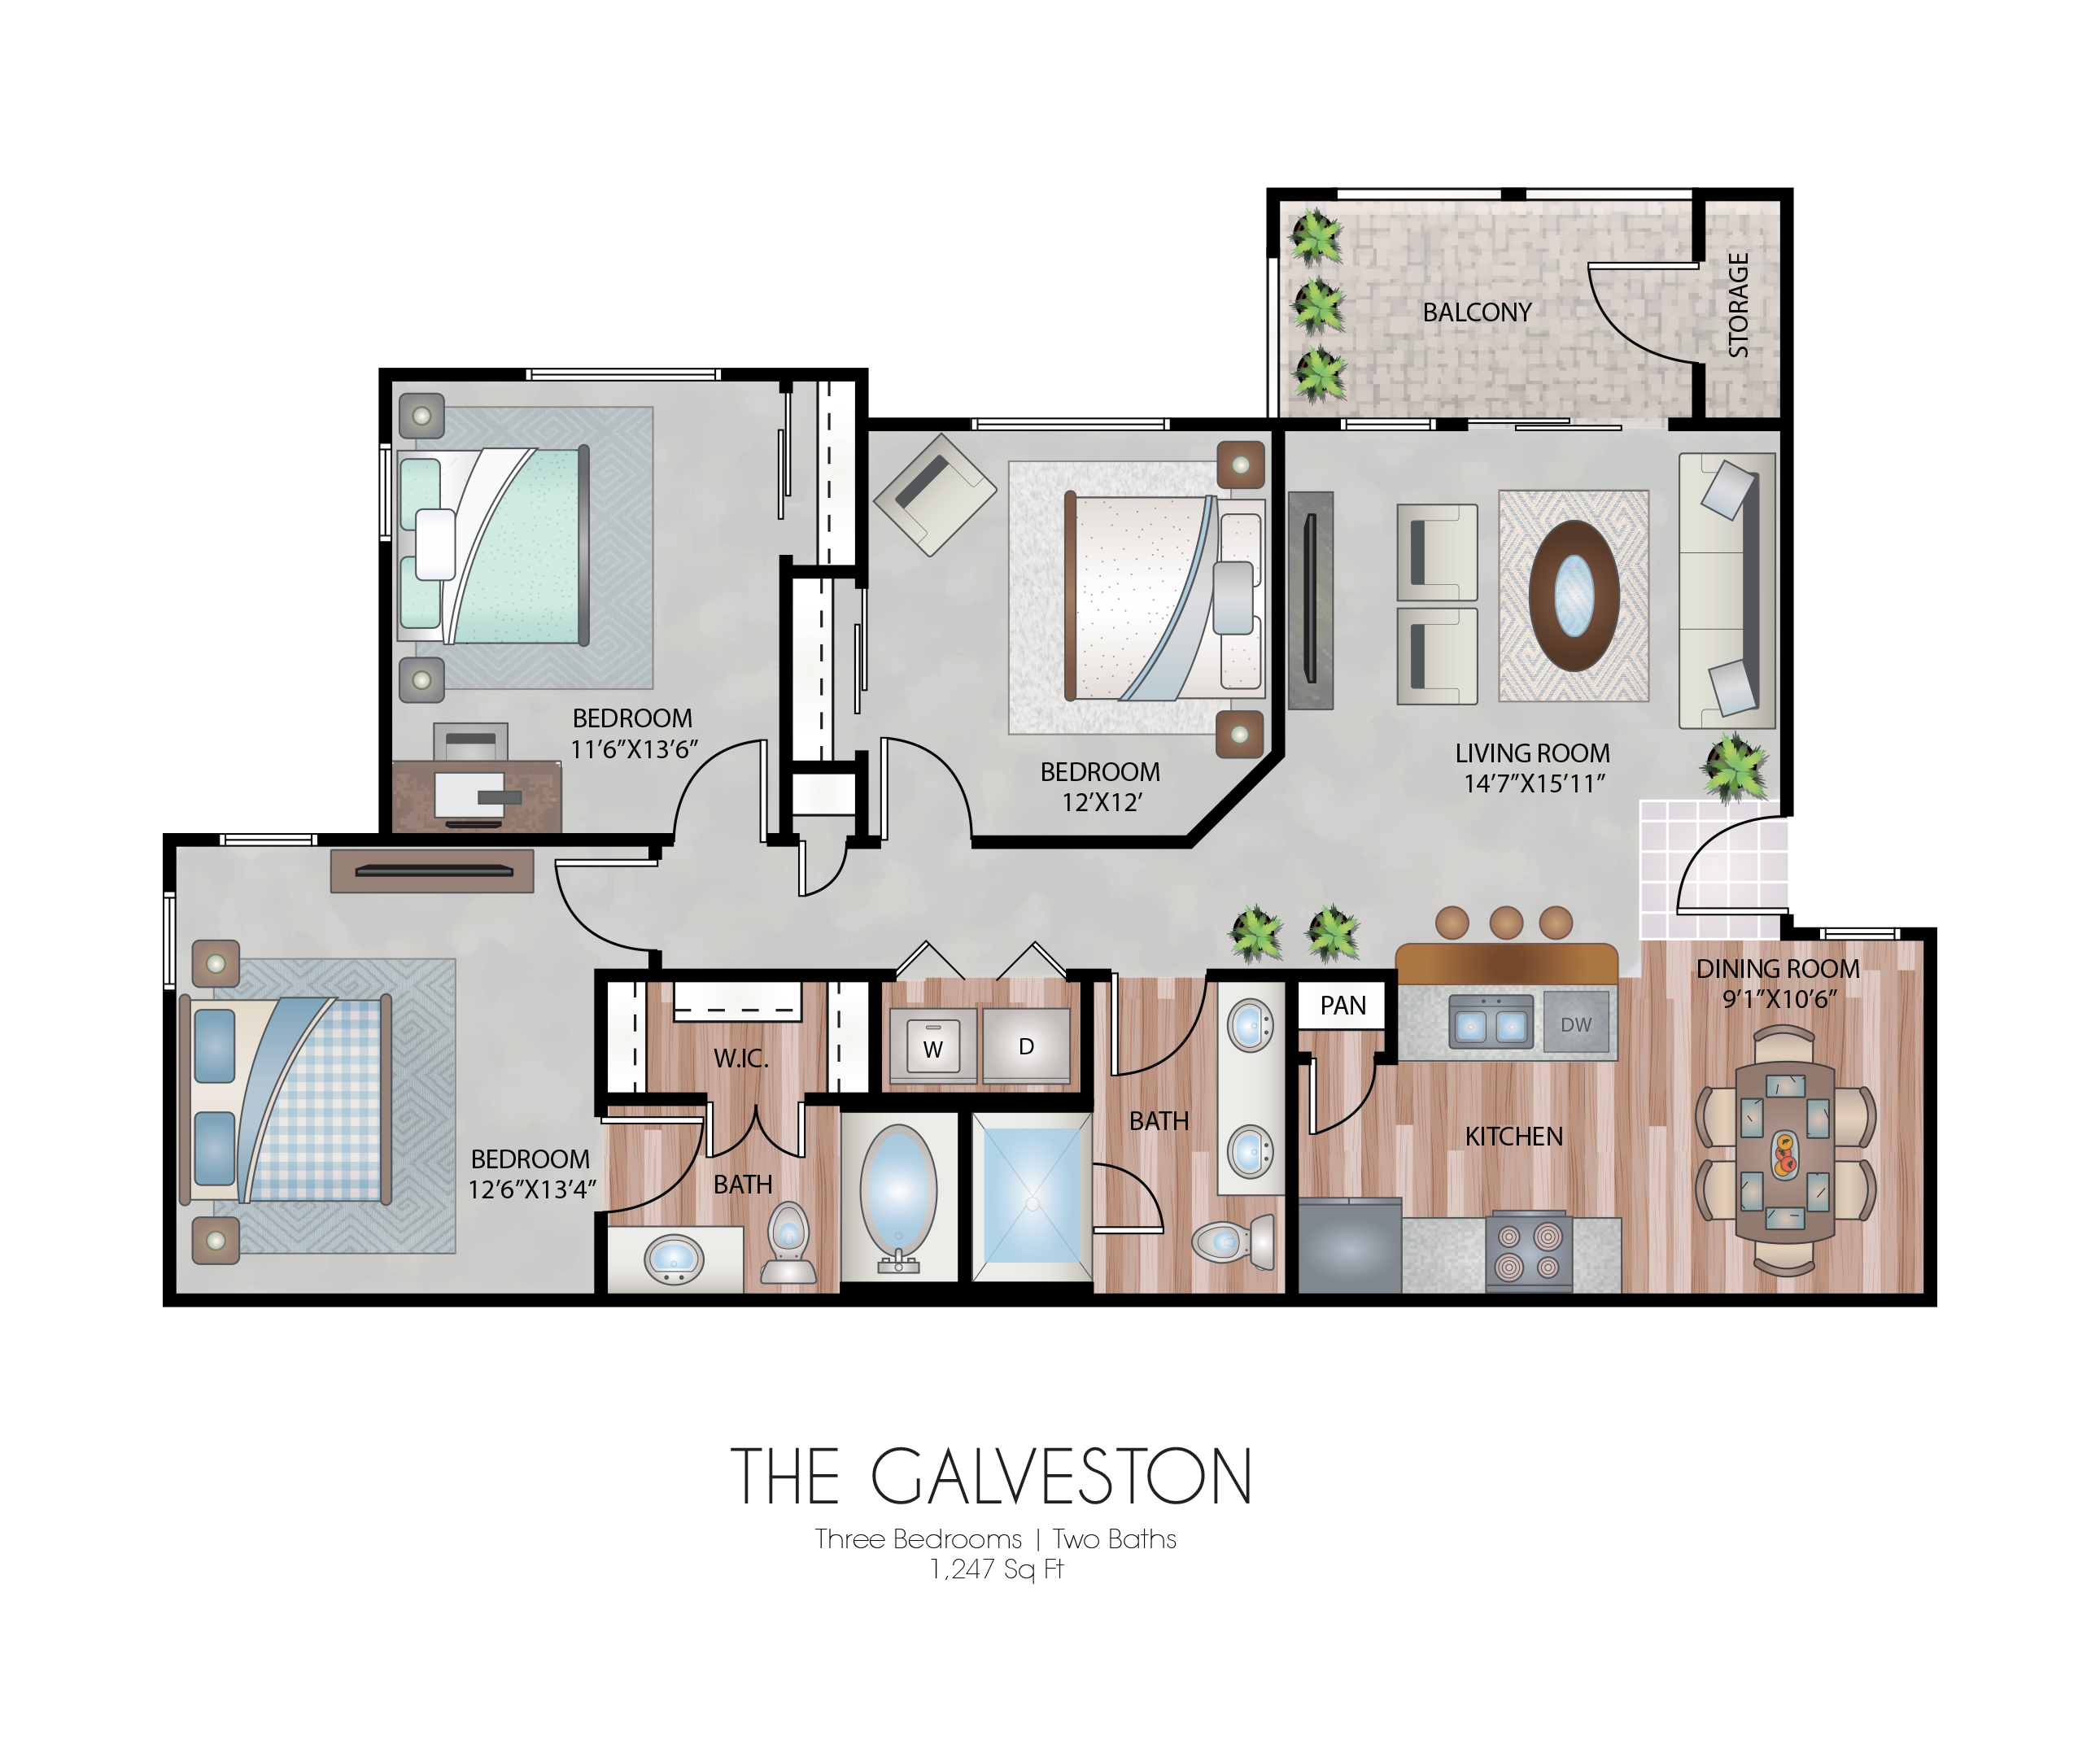 Floorplan - The Galveston image